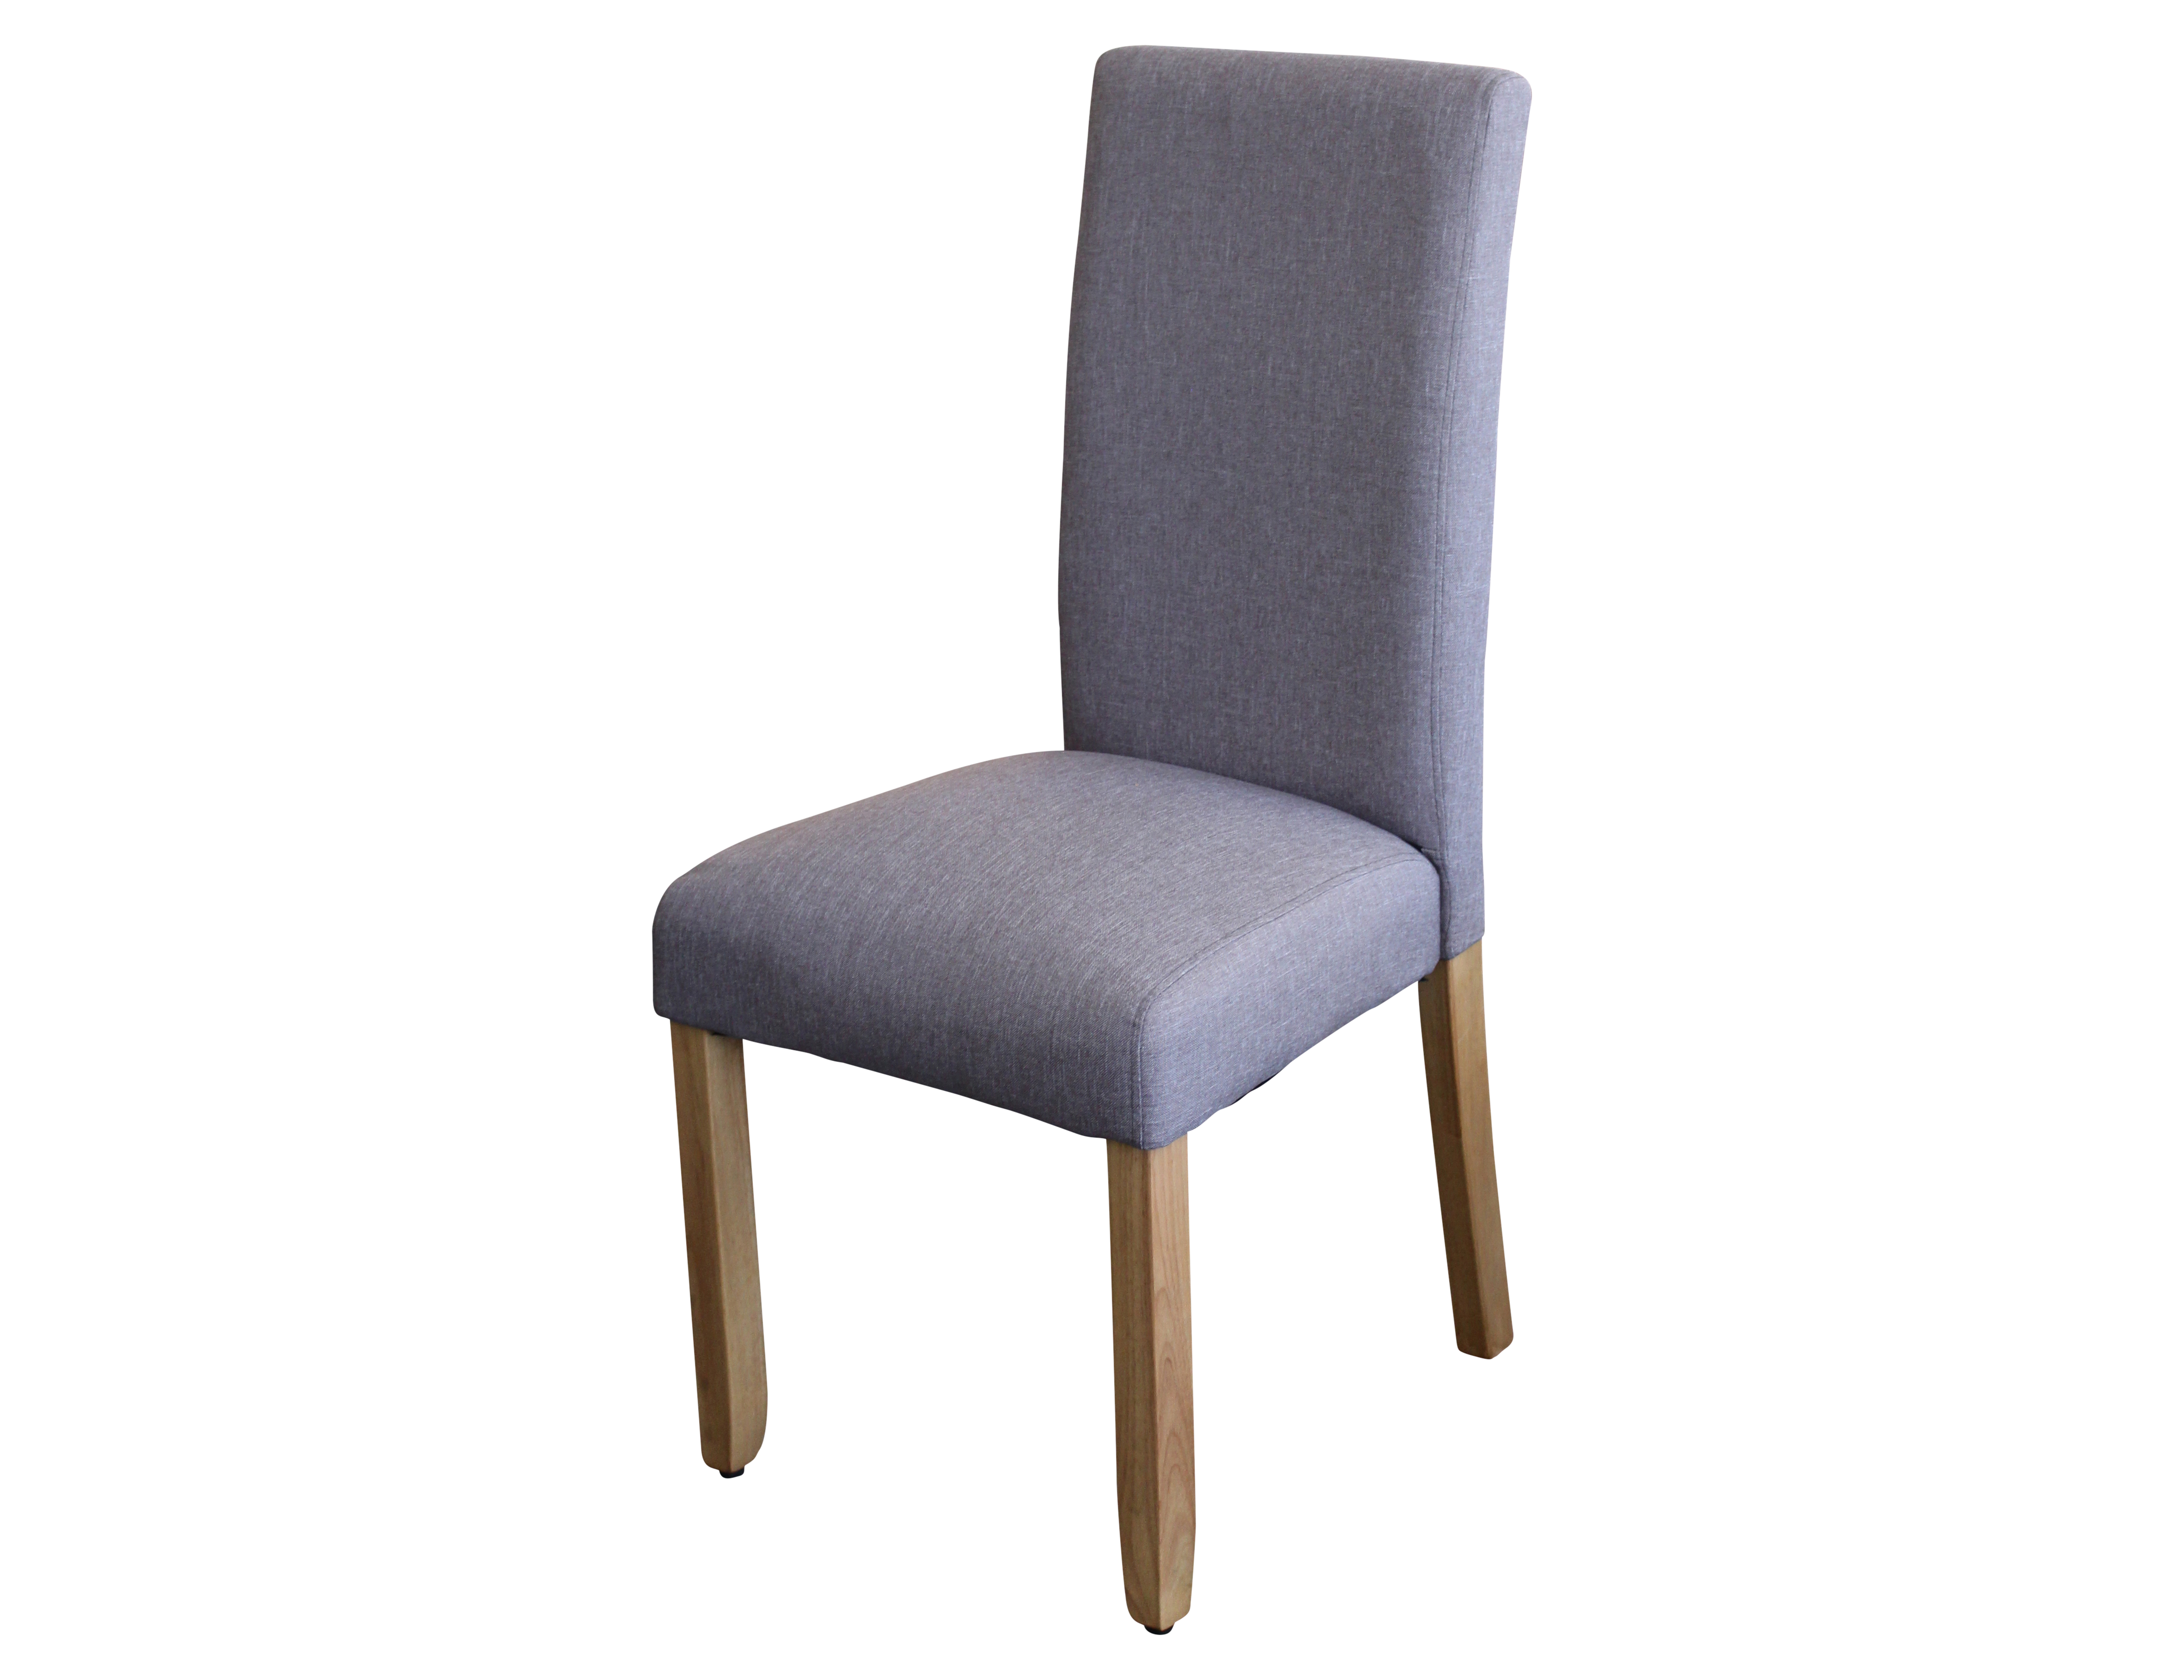 Ashton Dining Chair Upholstered In Light Grey Fabric